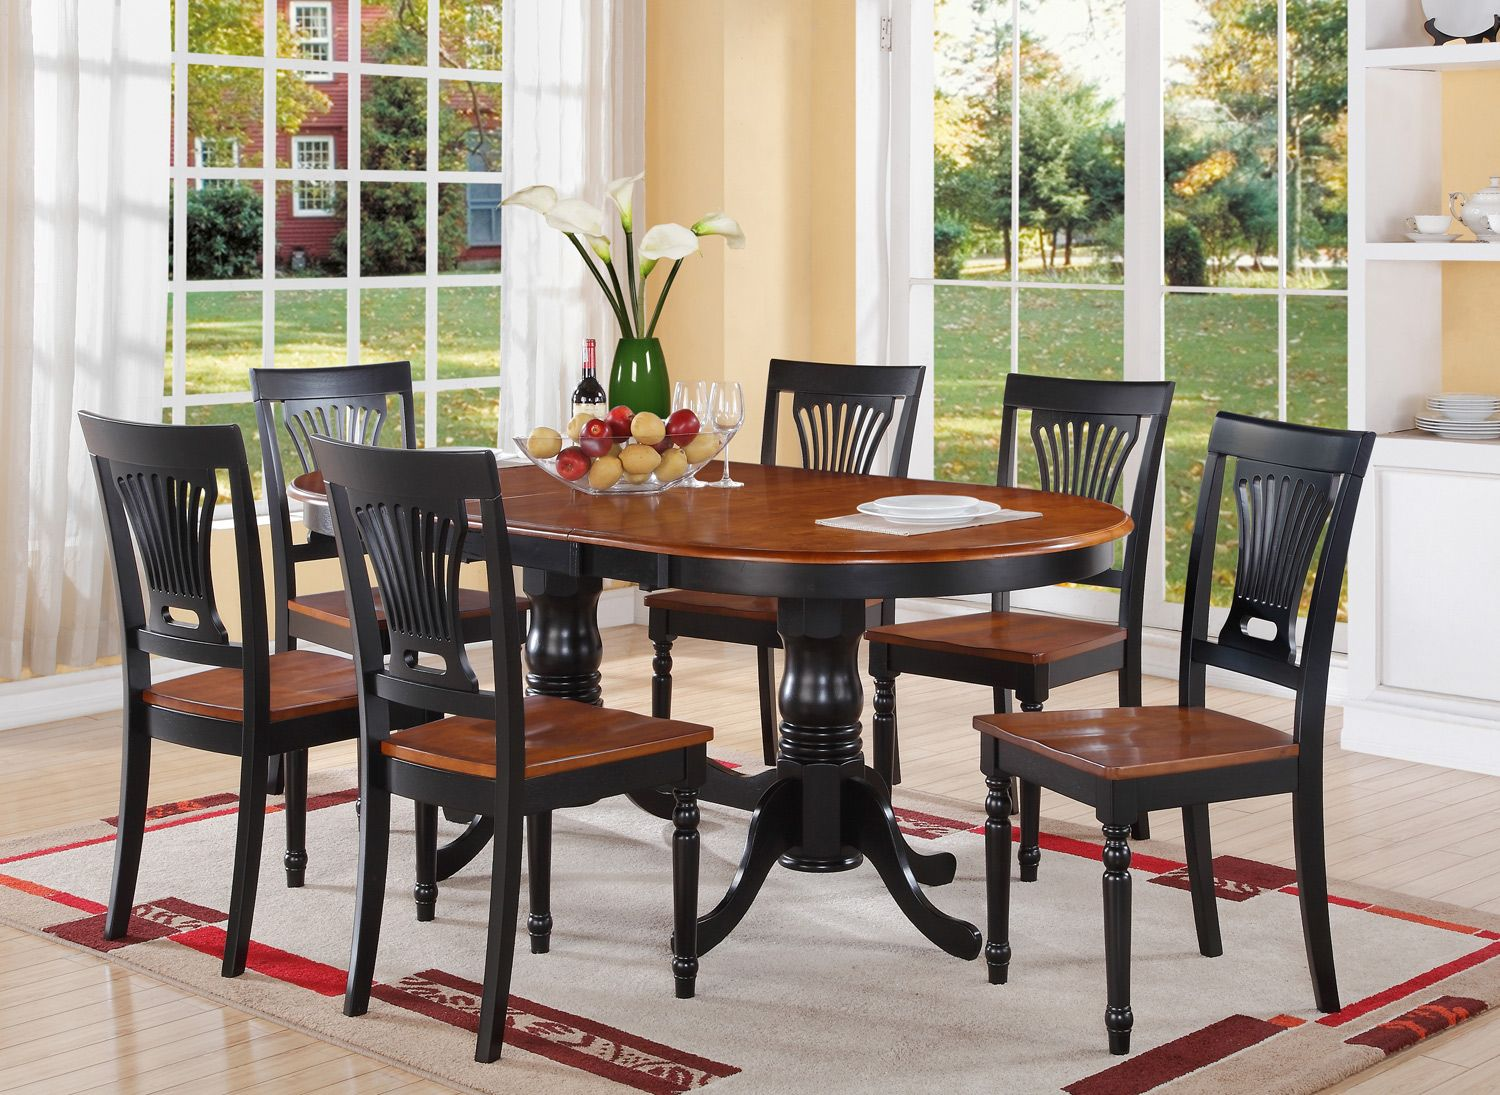 7PC Dining Set in Black